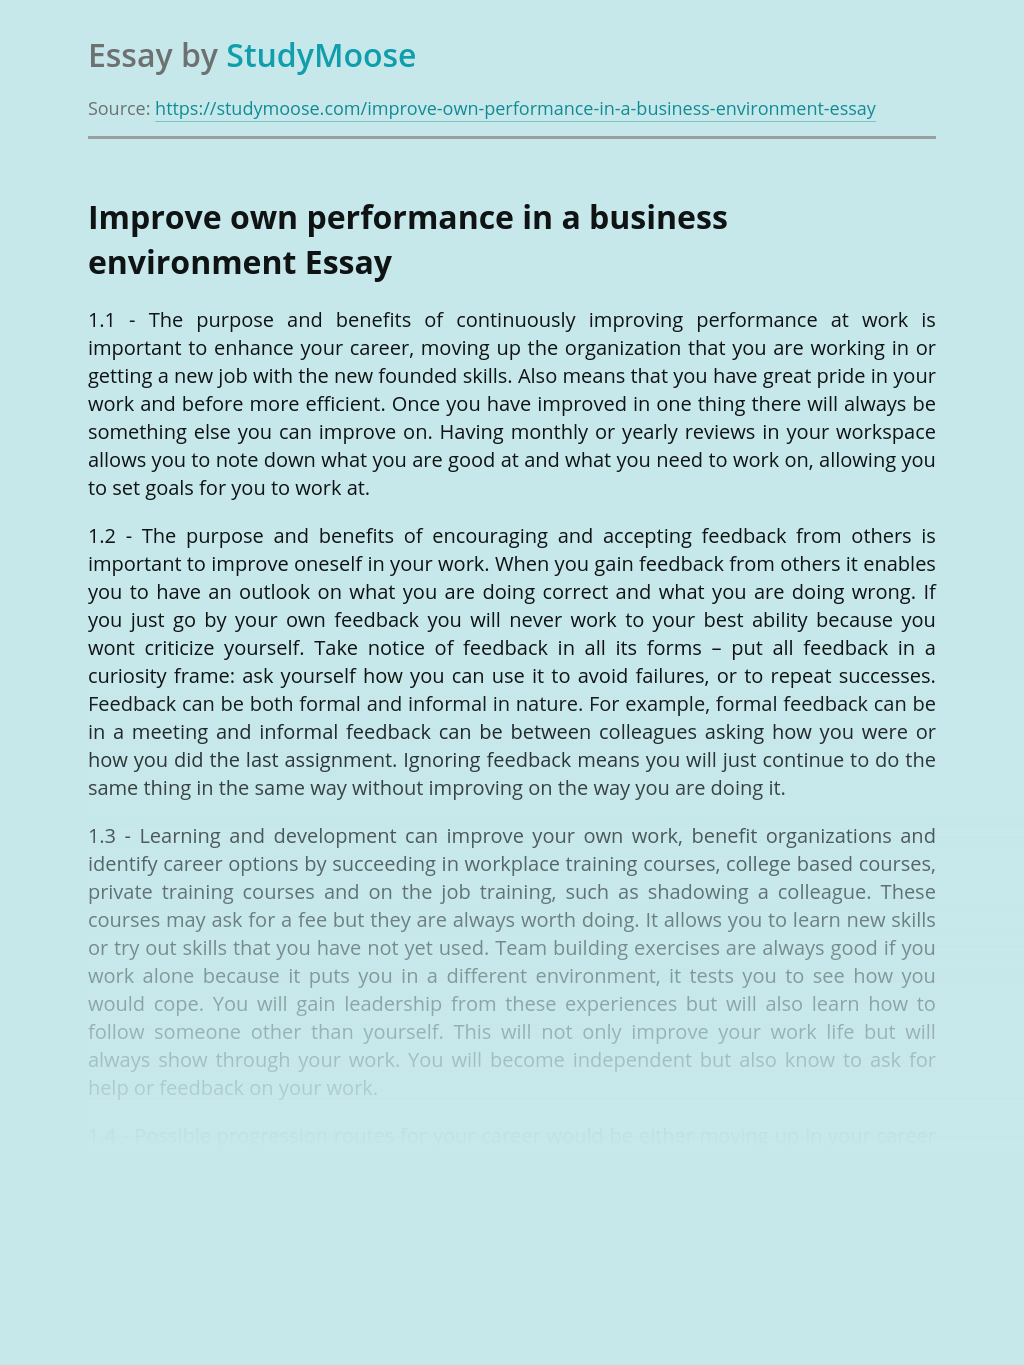 Improve own performance in a business environment